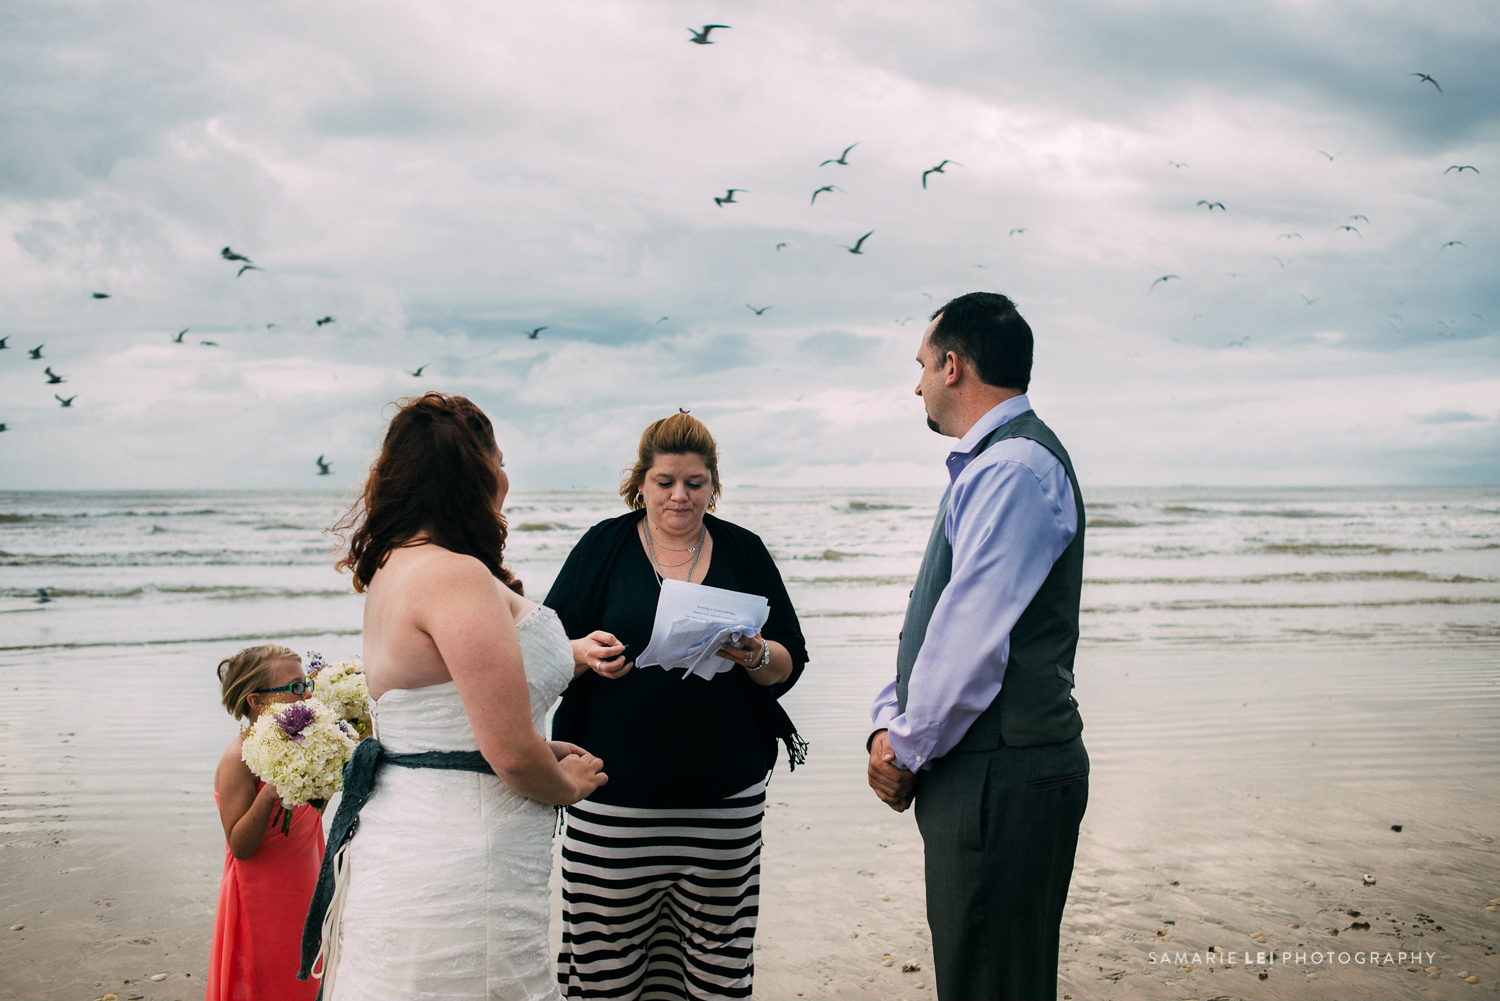 Galveston-elopement-houston-wedding-photographer-35.jpg